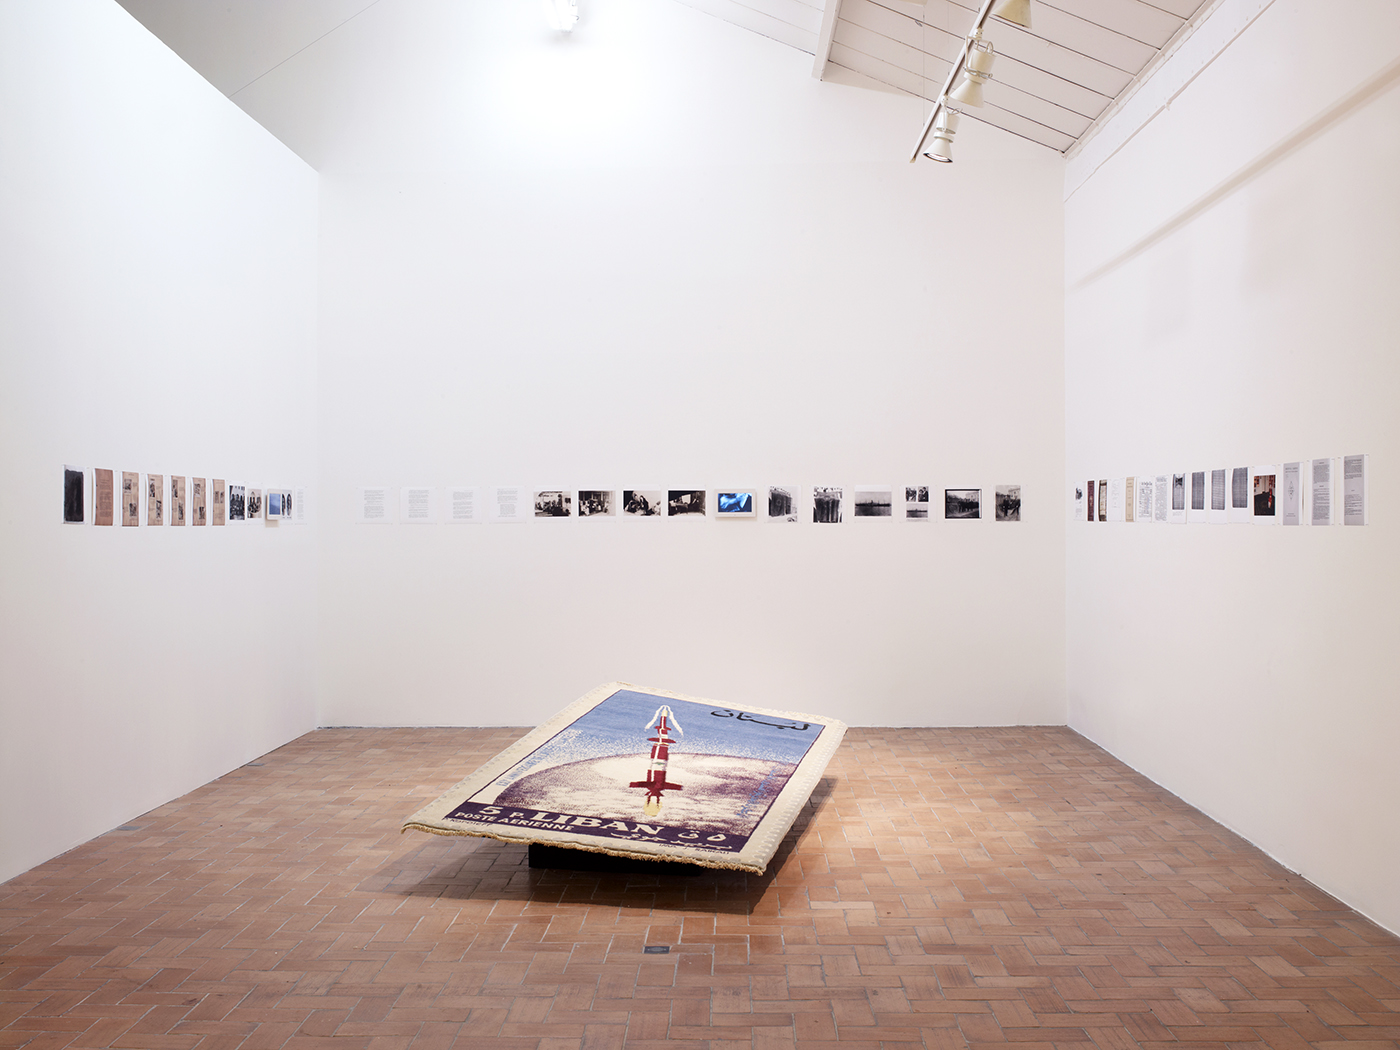 Joana Hadjithomas & Khalil Joreige - The Lebanese rocket society Exhibition , 2013